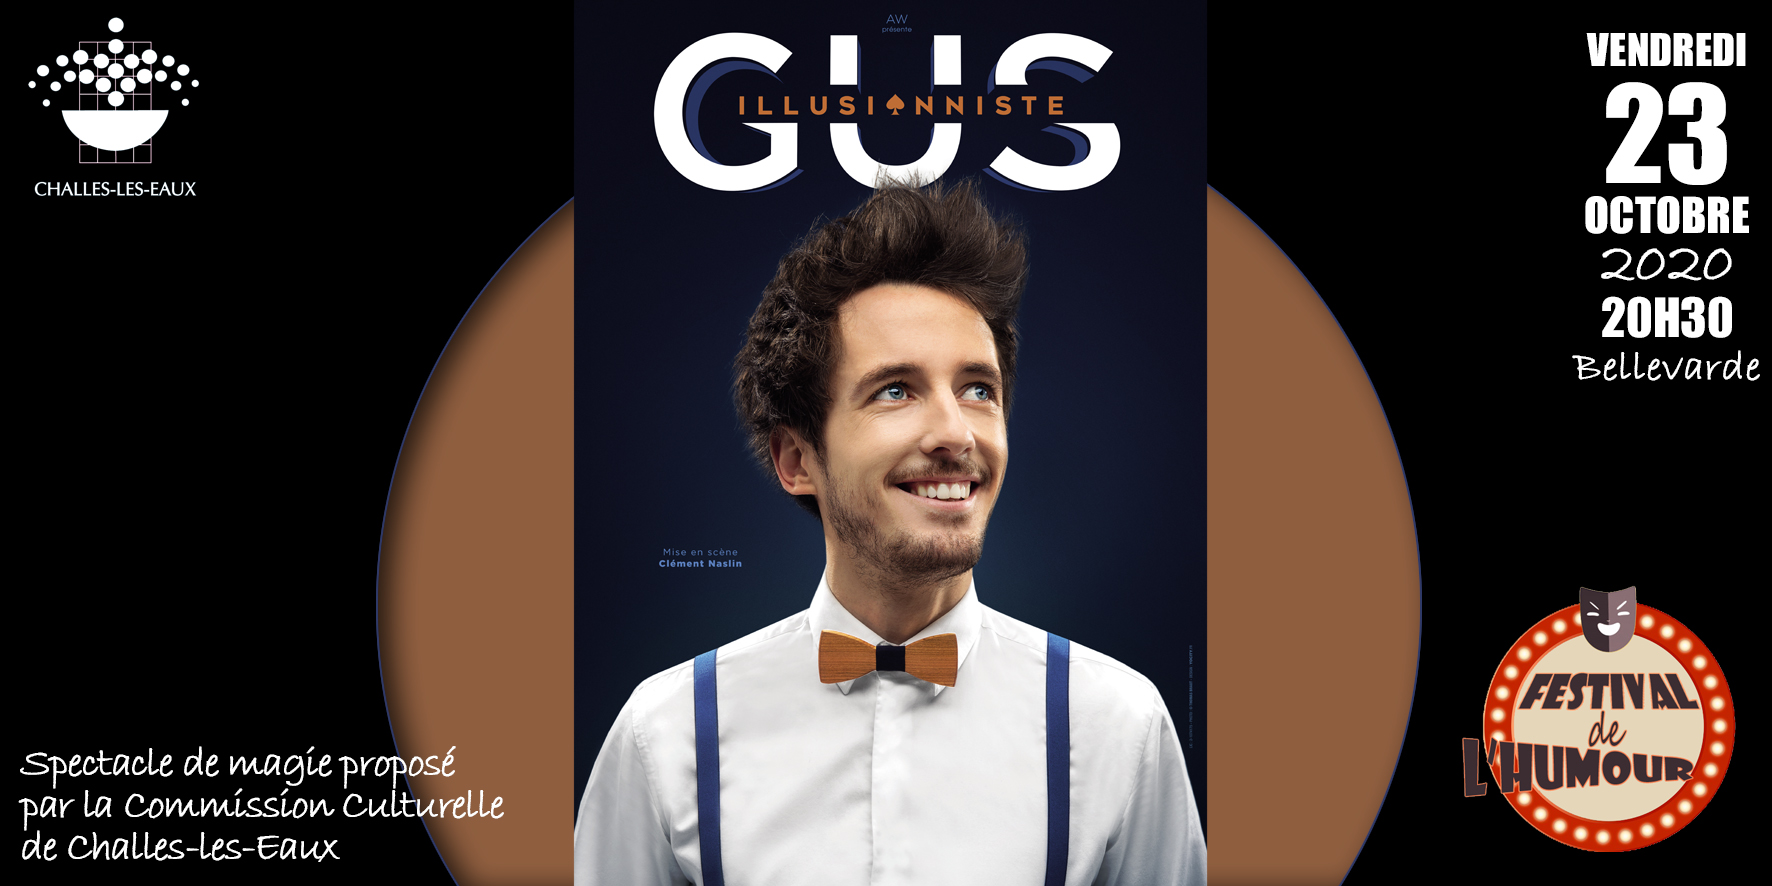 Gus l'illusionniste